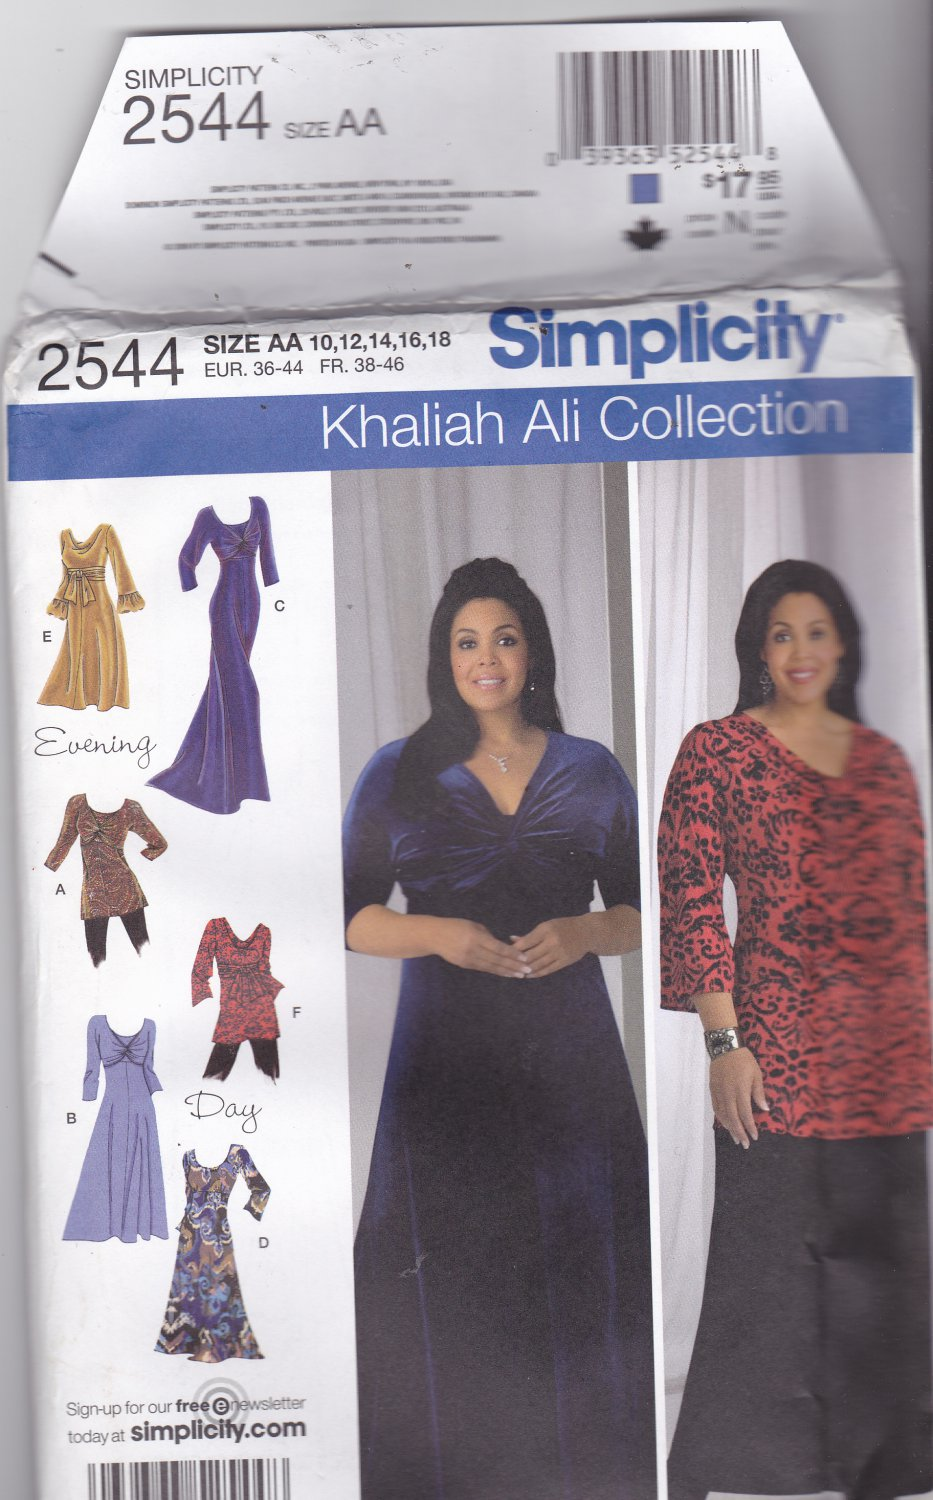 Simplicity 2544 Pattern Uncut FF 10 12 14 16 18 Khaliah Ali Knit Dress Tunic